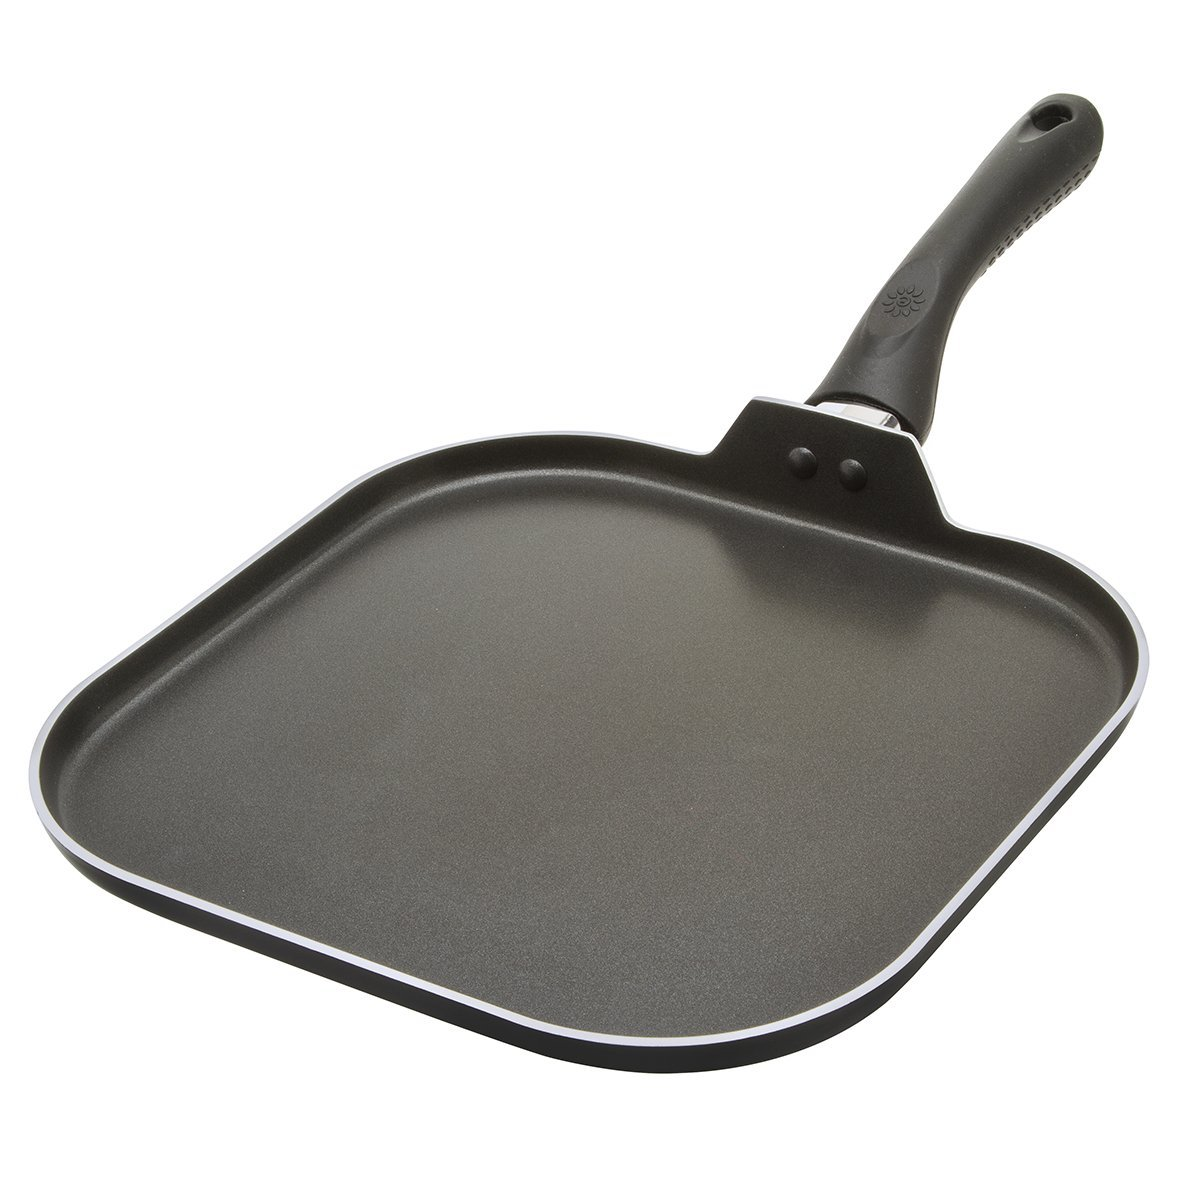 Ecolution Artistry Non-Stick Griddle -PFOA Free Hydrolon Non-Stick - Pure Heavy-Gauge Aluminum with a Soft Silicone Handle - Dishwasher Safe - Black - 11'' x 11''